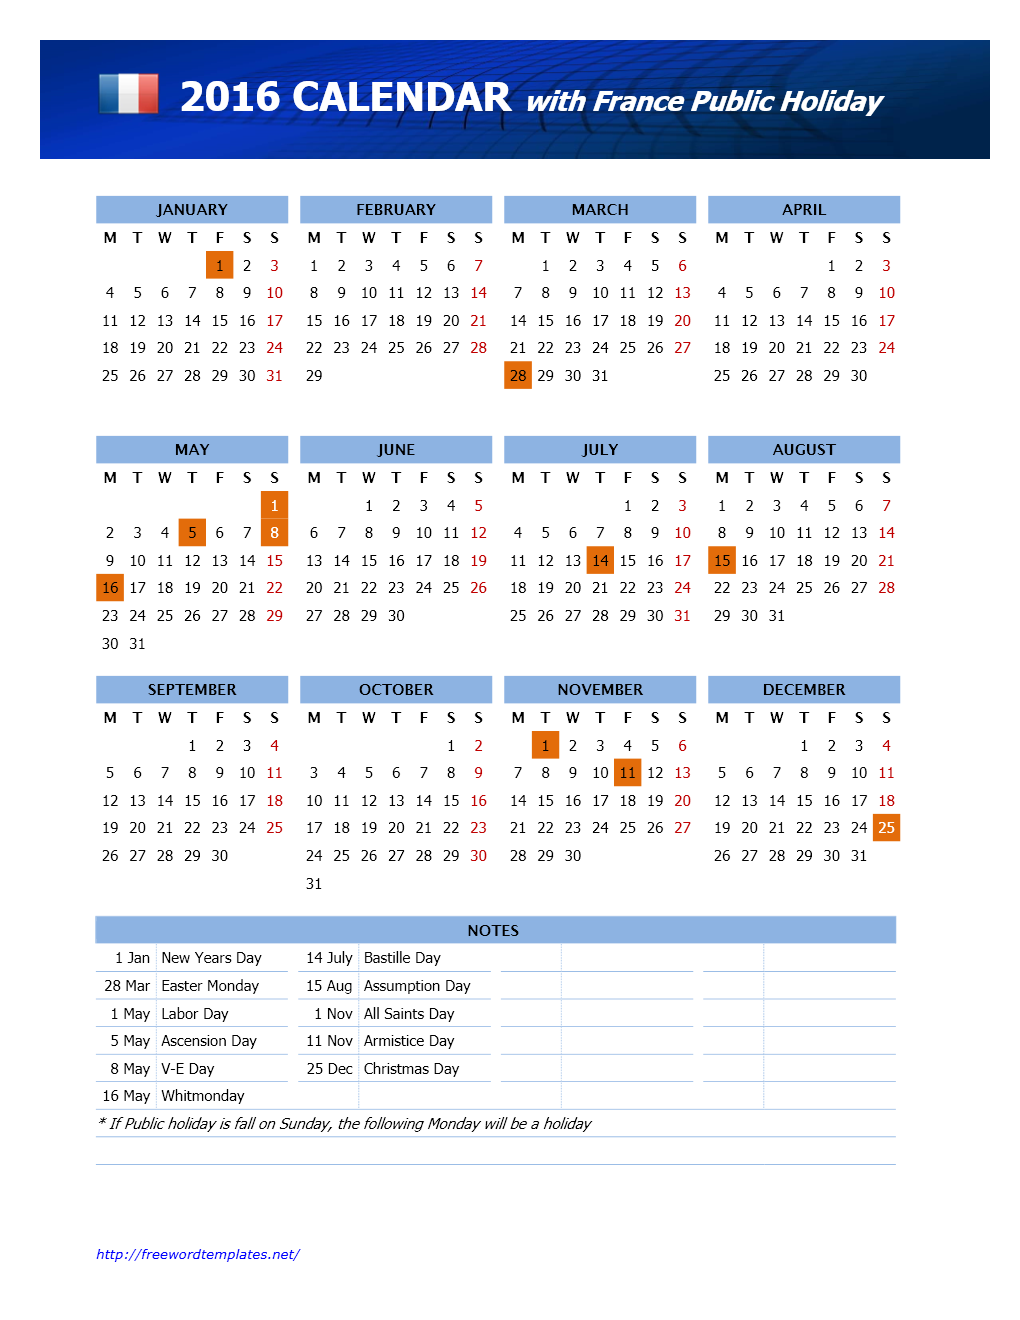 2016 France Public Holidays Calendar | Freewordtemplates.net